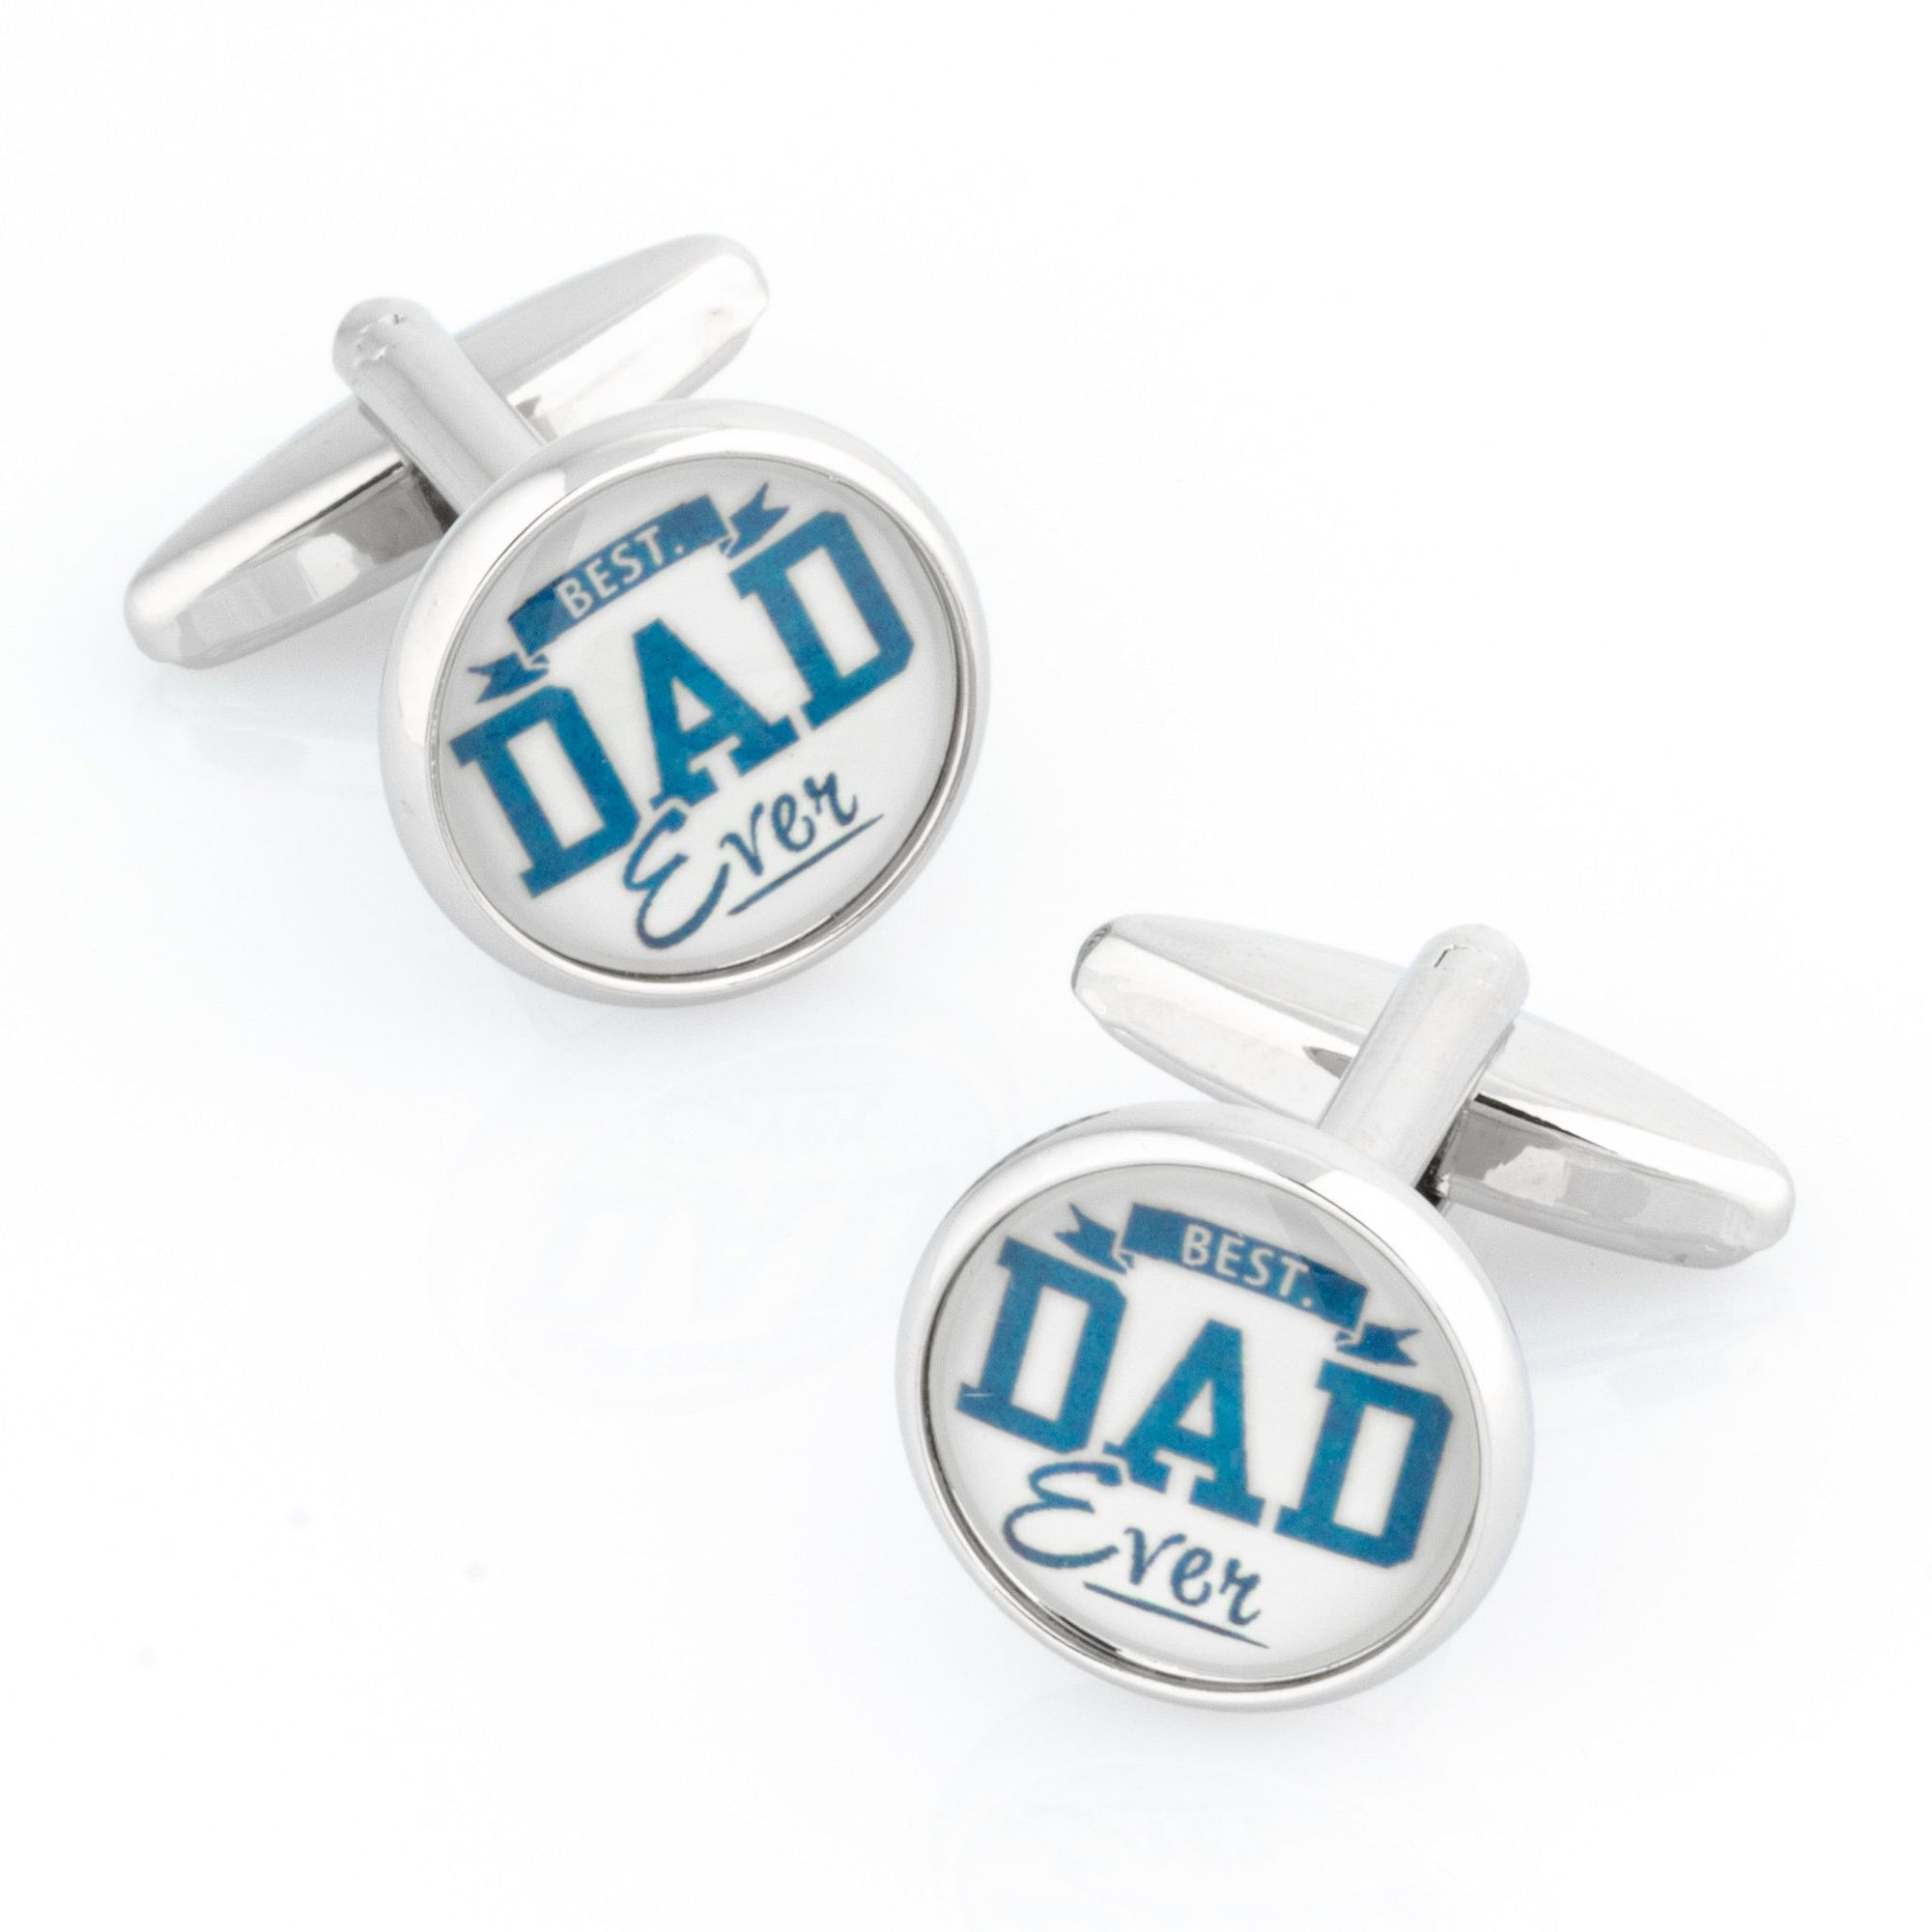 Best Dad Ever Round Cufflinks , Novelty Cufflinks , CL8445 , Mens Cufflinks , Cufflinks , Cuffed , Clinks , Clinks Australia